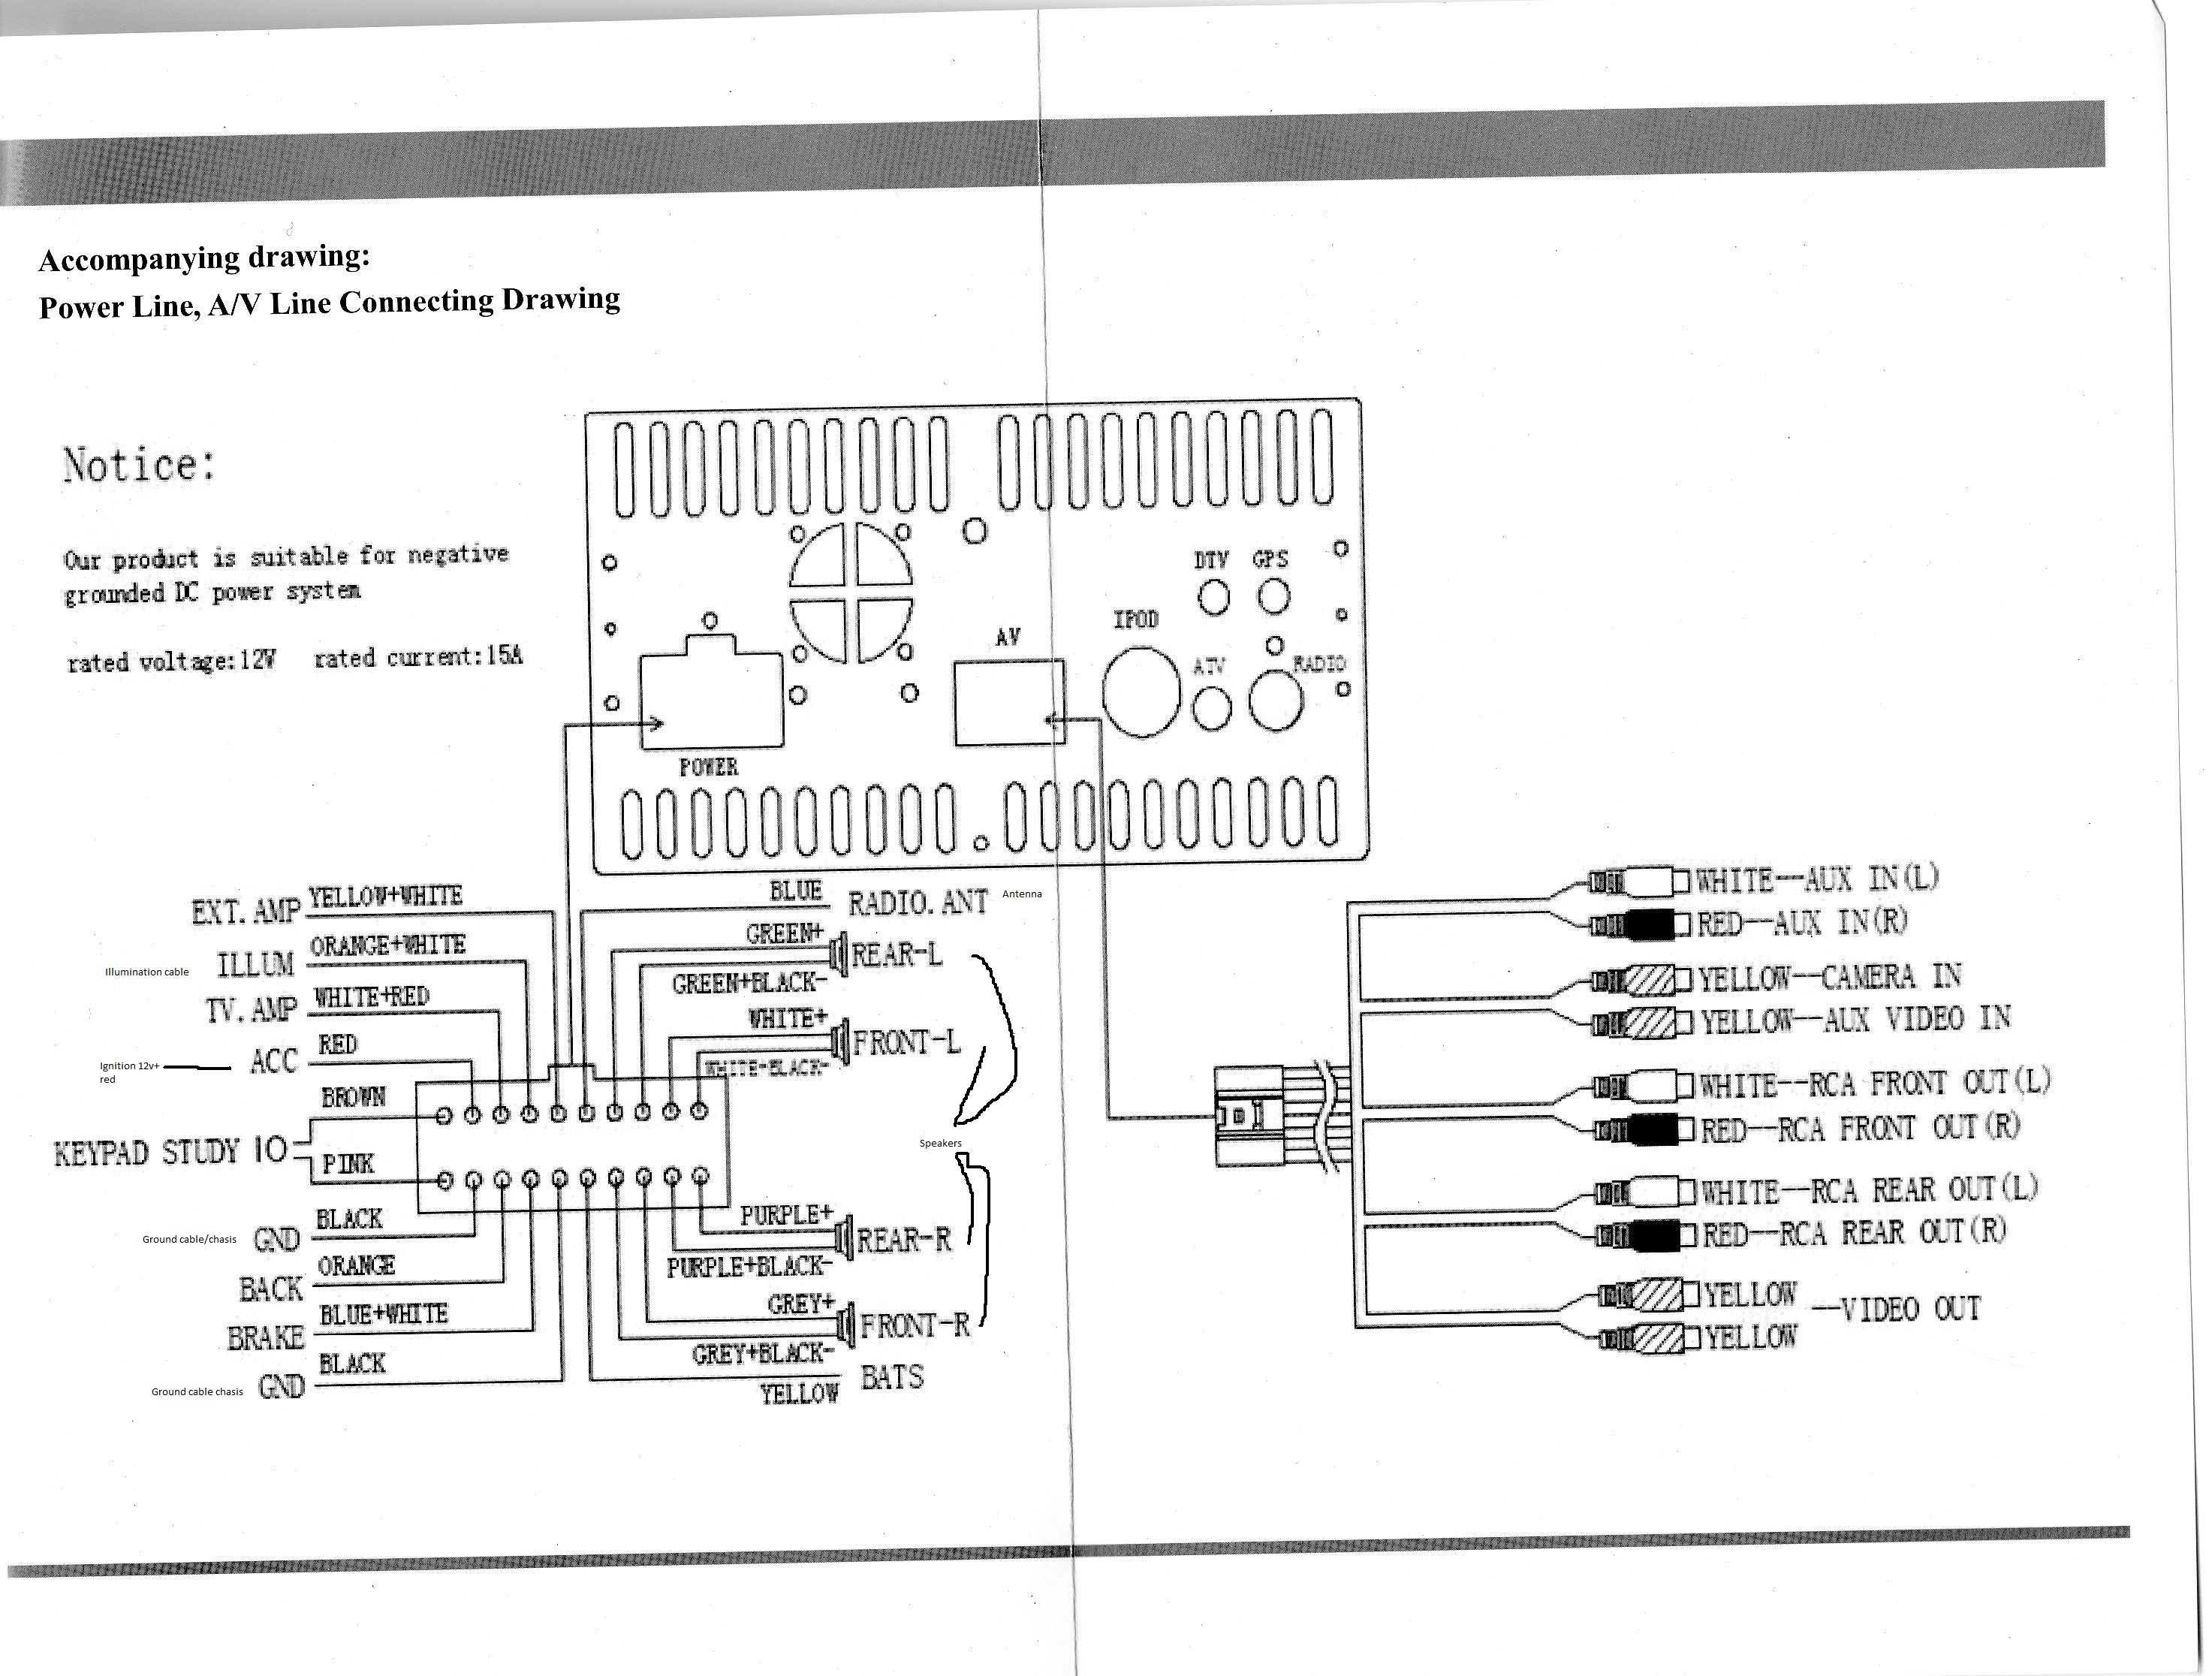 Groovy Nissan Patrol Wiring Diagram For Stereo Wiring Diagram G9 Wiring Cloud Oideiuggs Outletorg